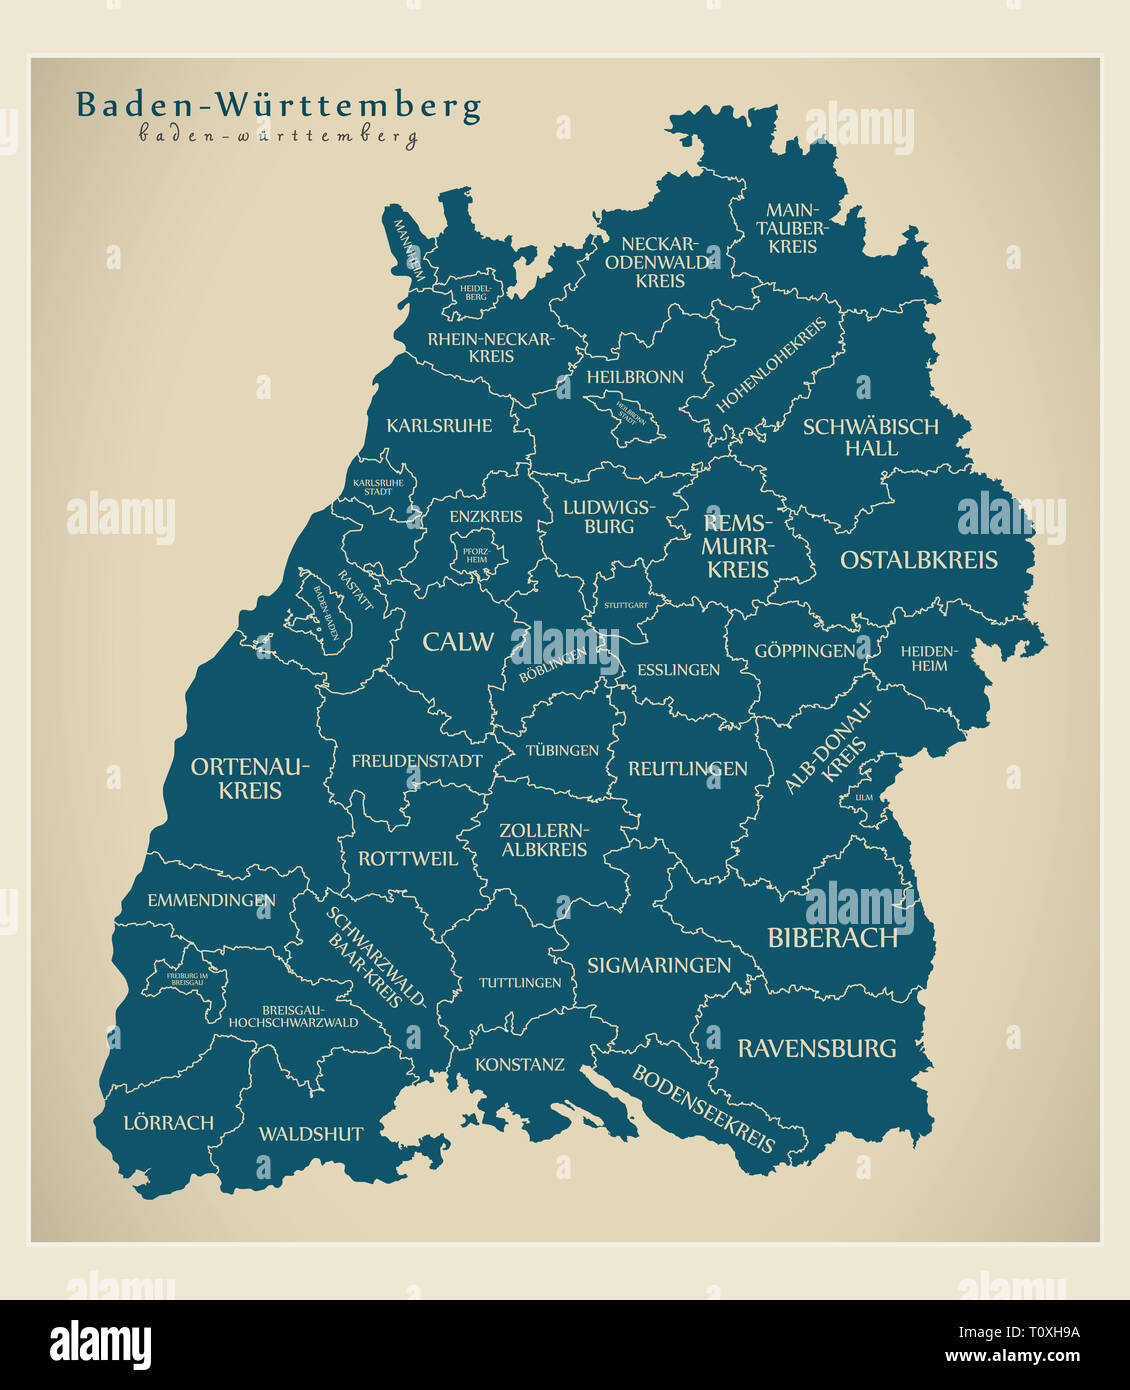 Map Of Germany And Surrounding Counties.Modern Map Baden Wuerttemberg Map Of Germany With Counties And